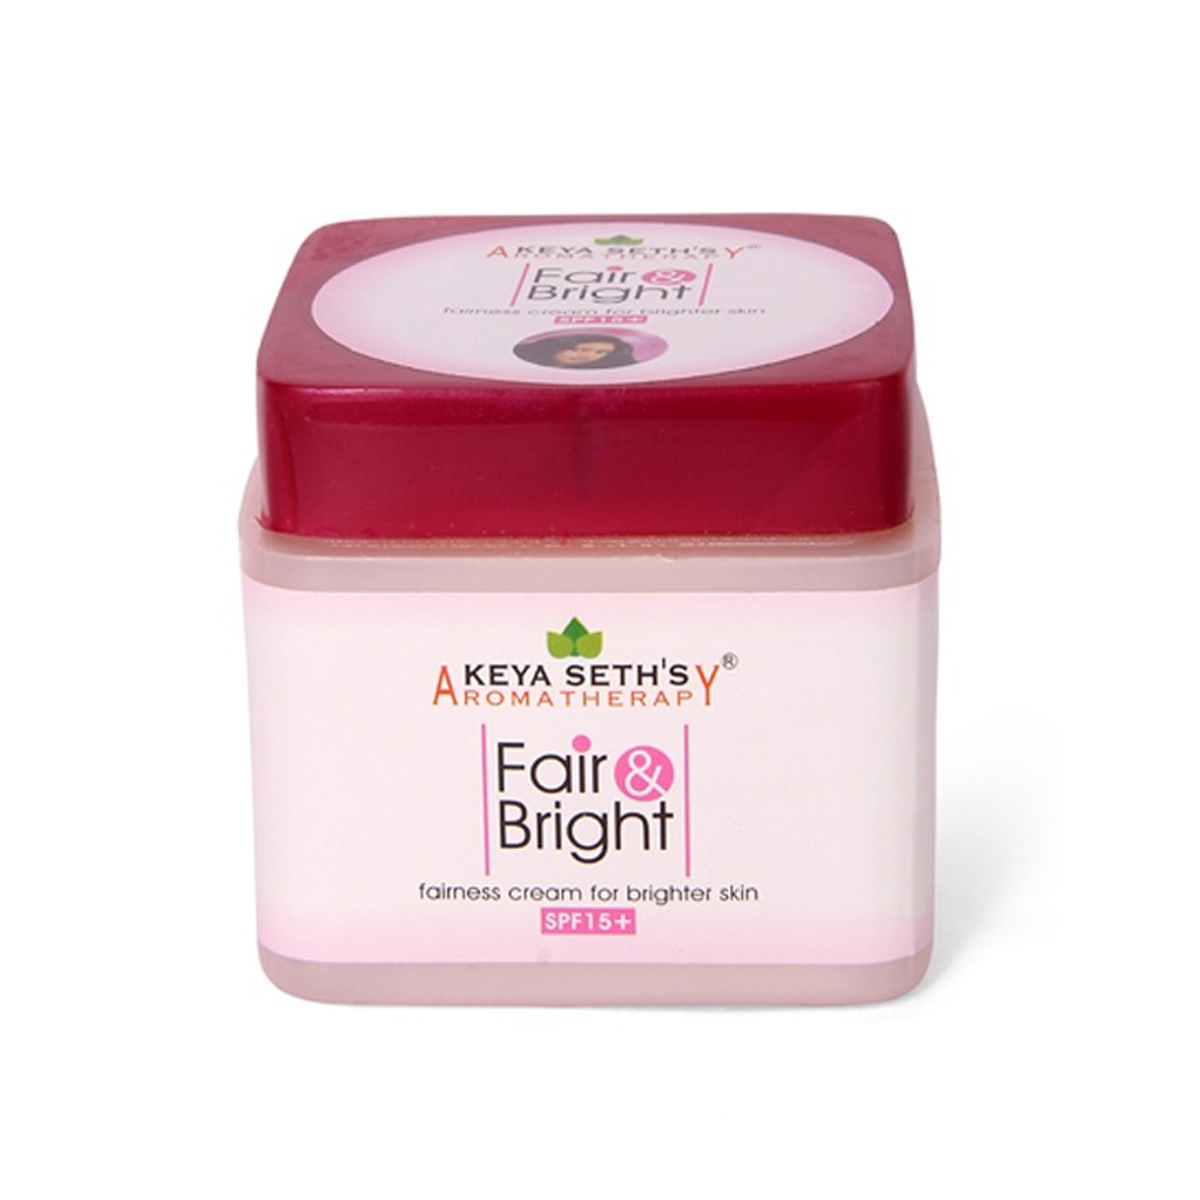 KEYA SETH FAIR & BRIGHT CREAM - 50 GM